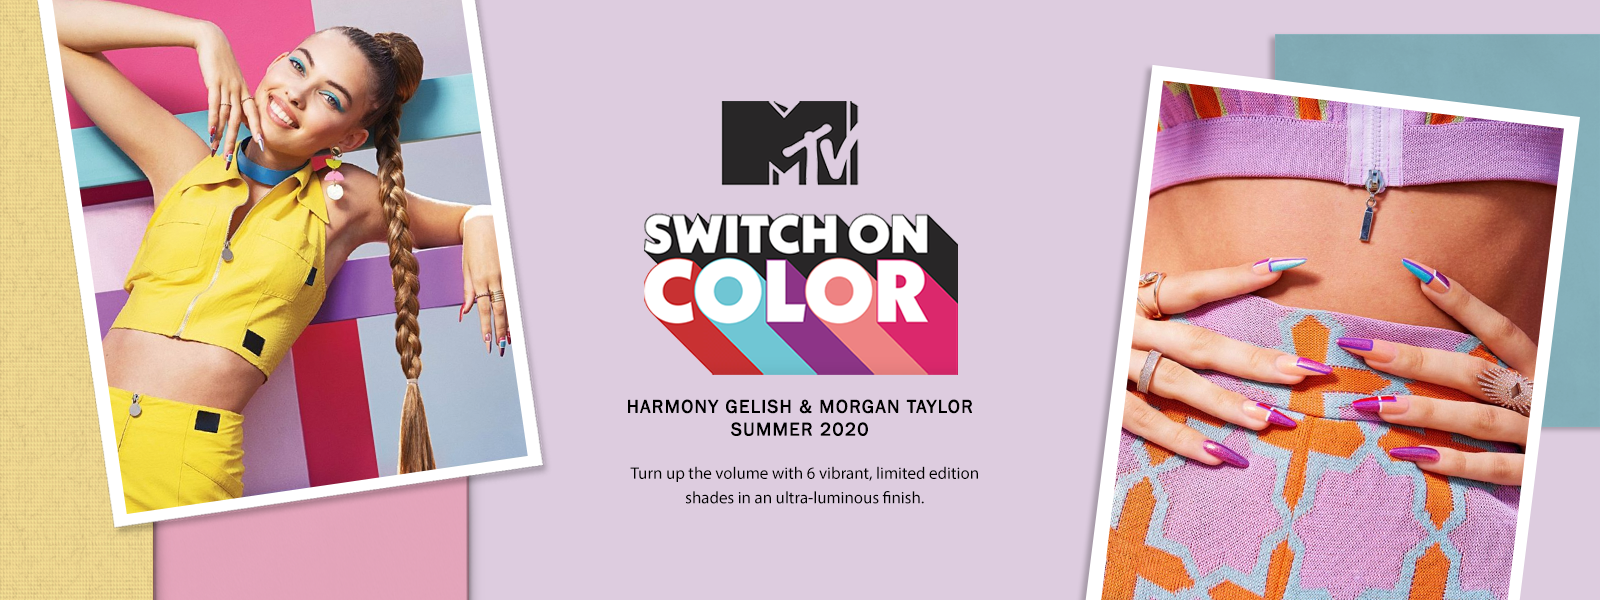 MTV Switch On Color Collection Summer 2020